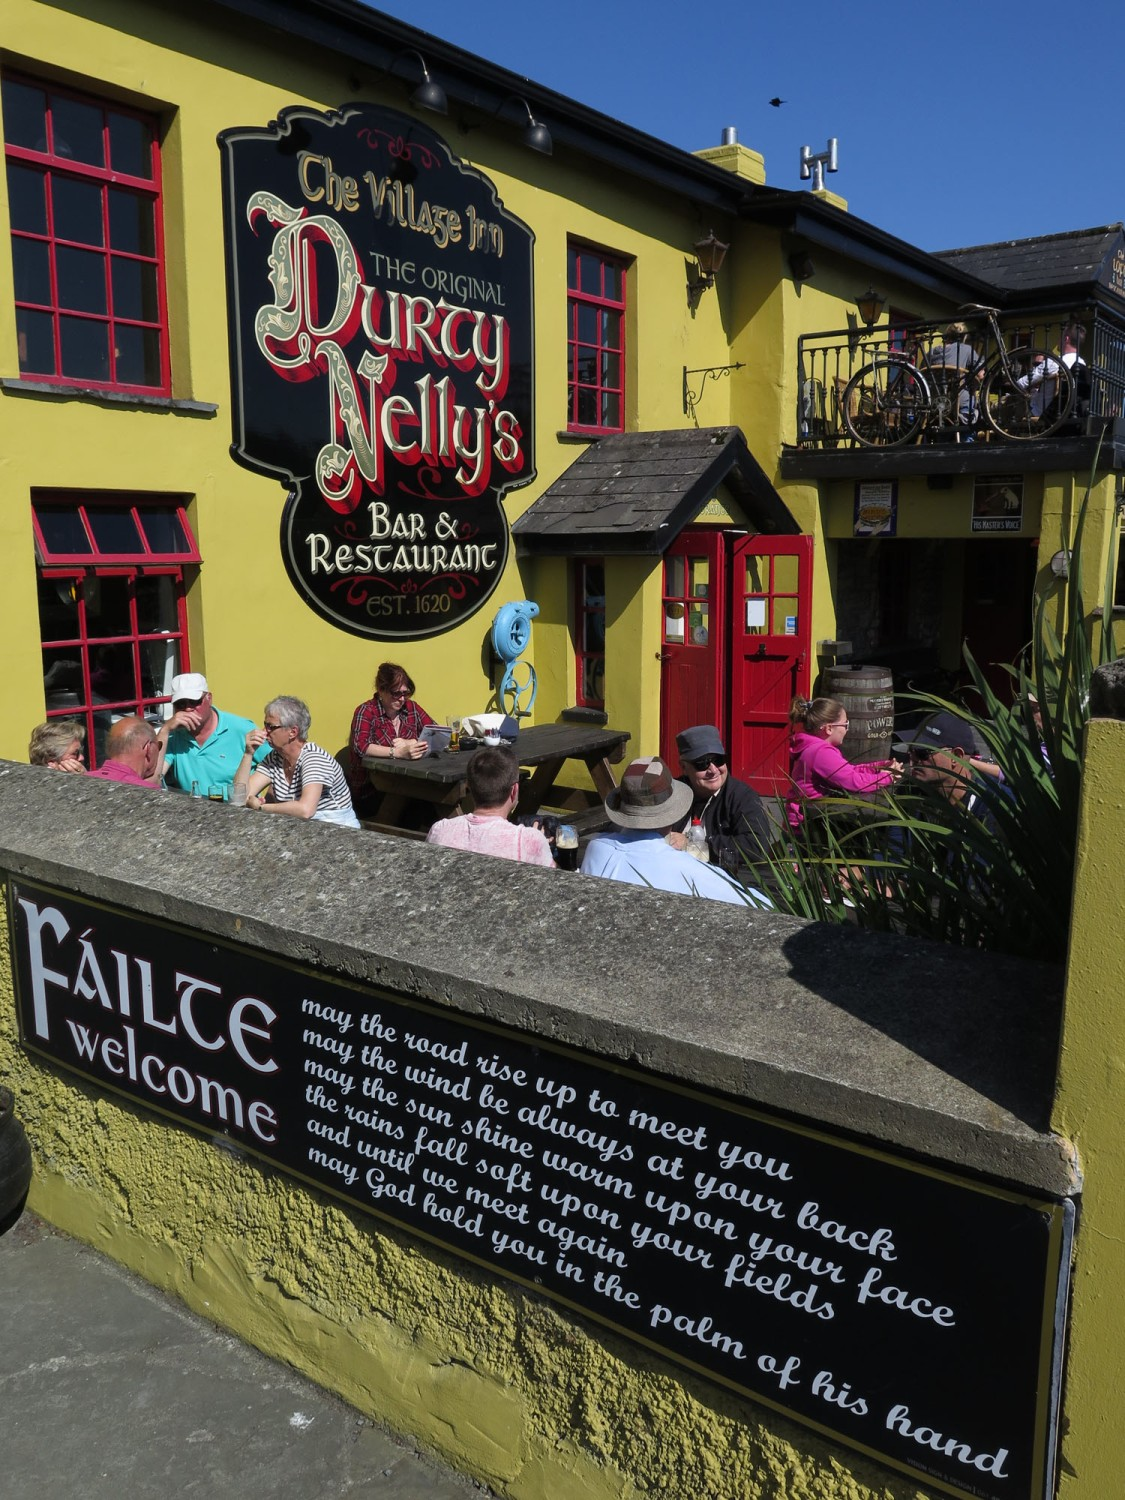 Ireland-Sights-And-Scenery-Bunratty-Durty-Nellies